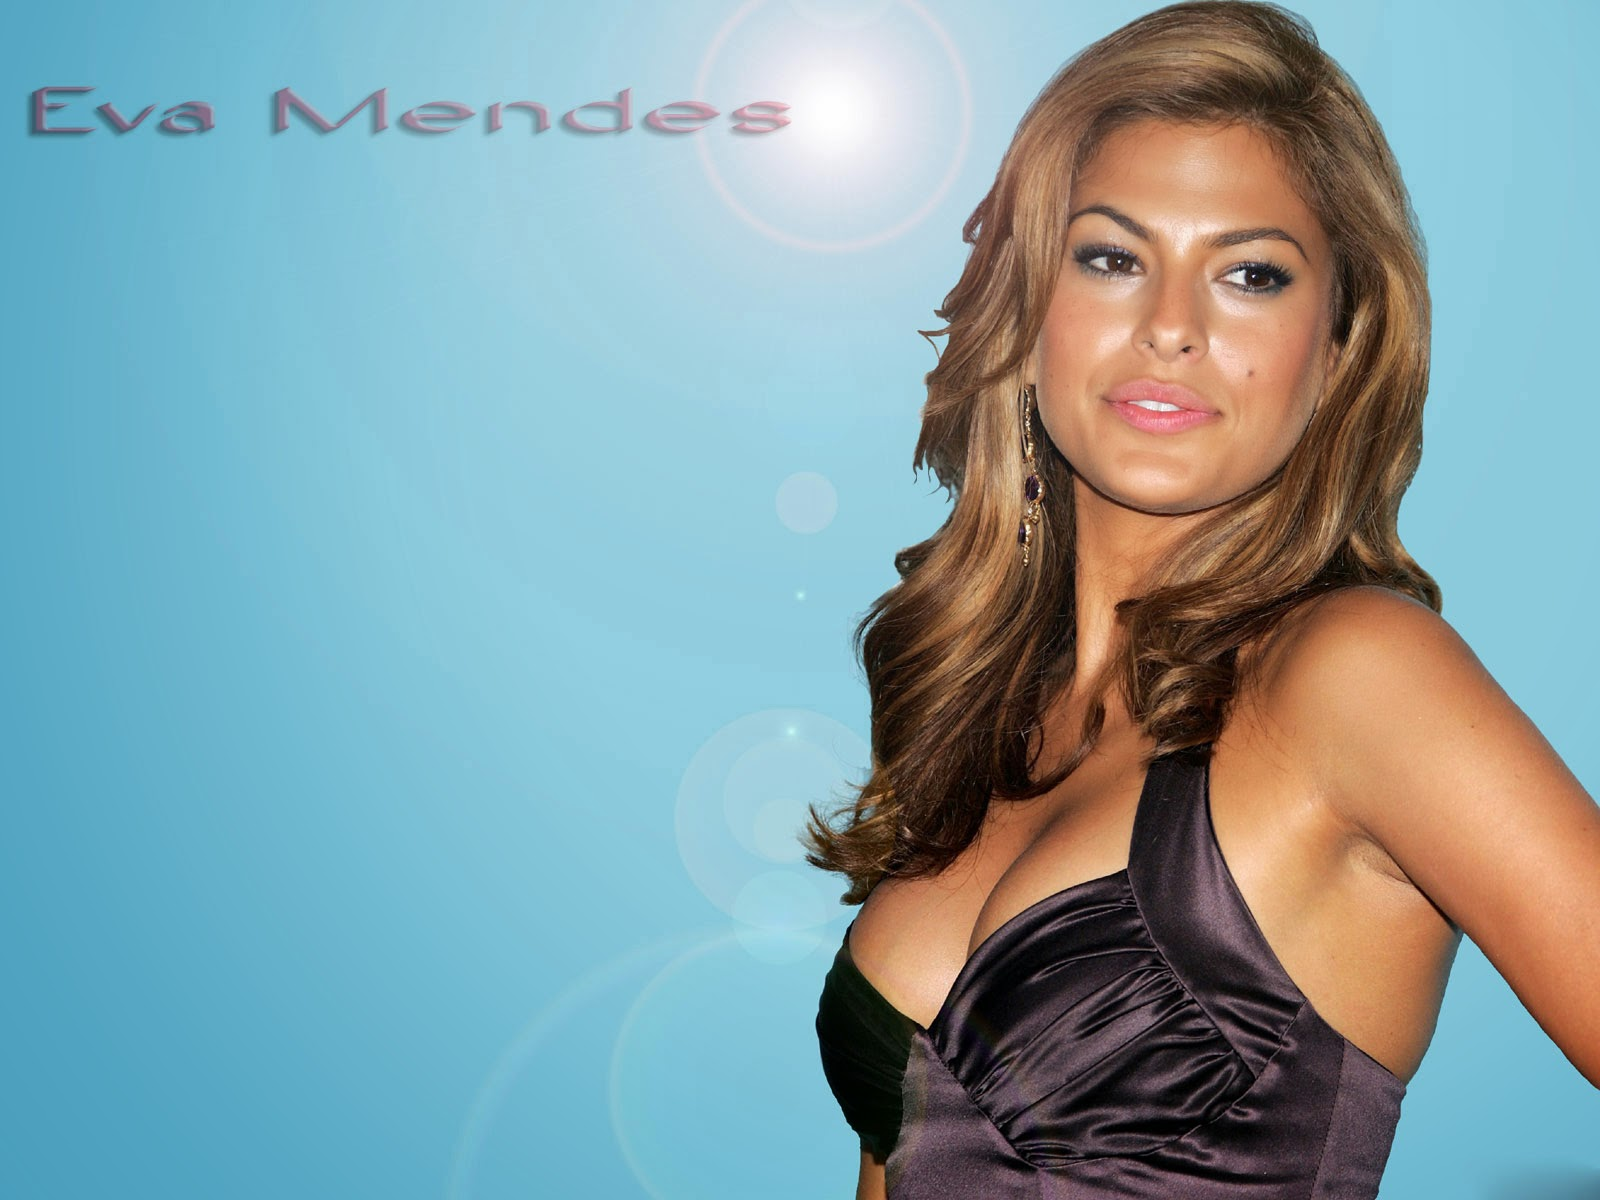 Eva mendes hot and sexy girl wallpaper